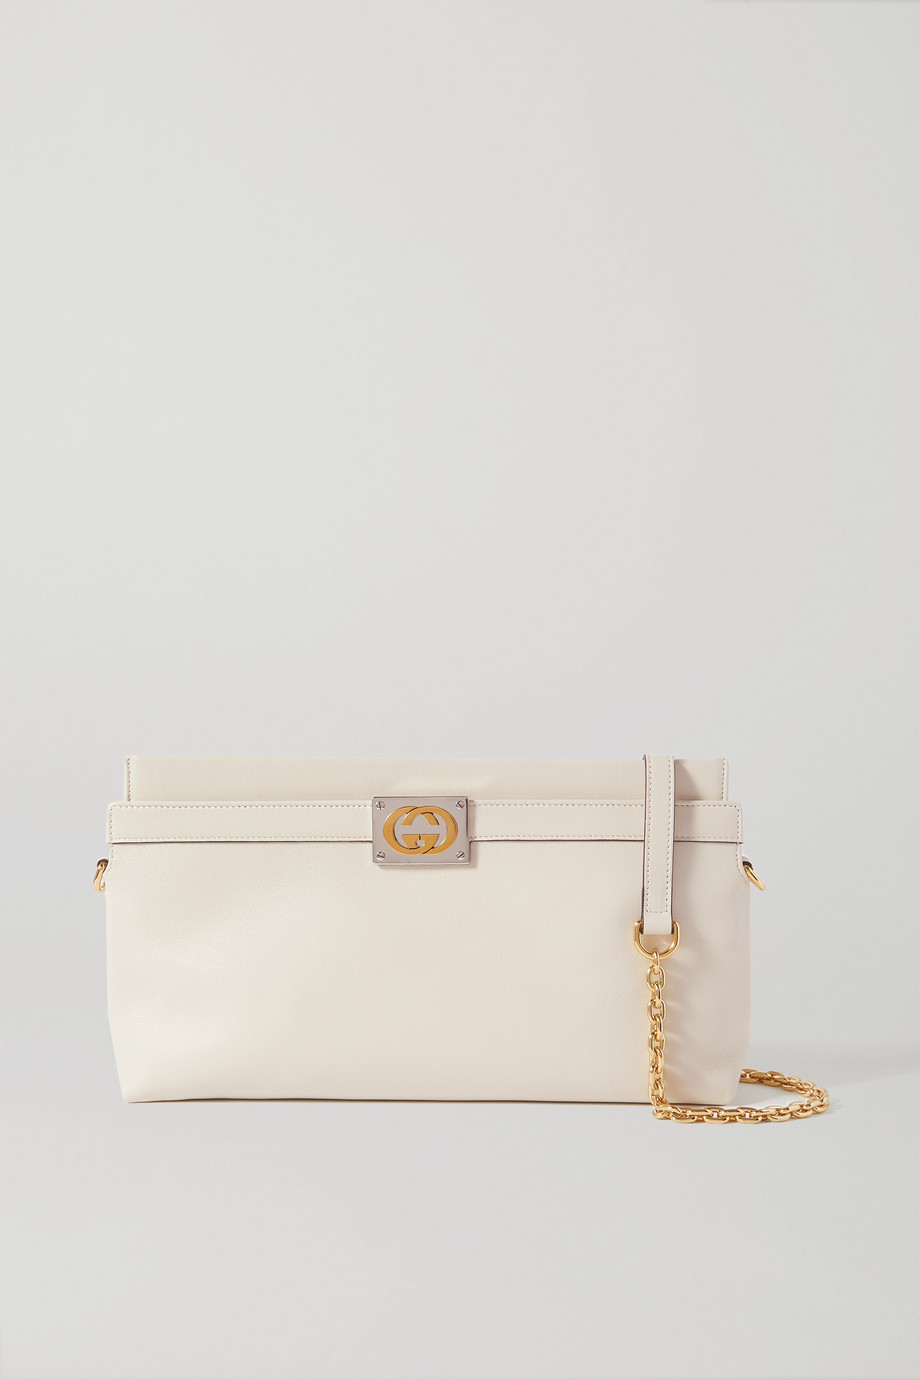 Gucci Matisse leather shoulder bag